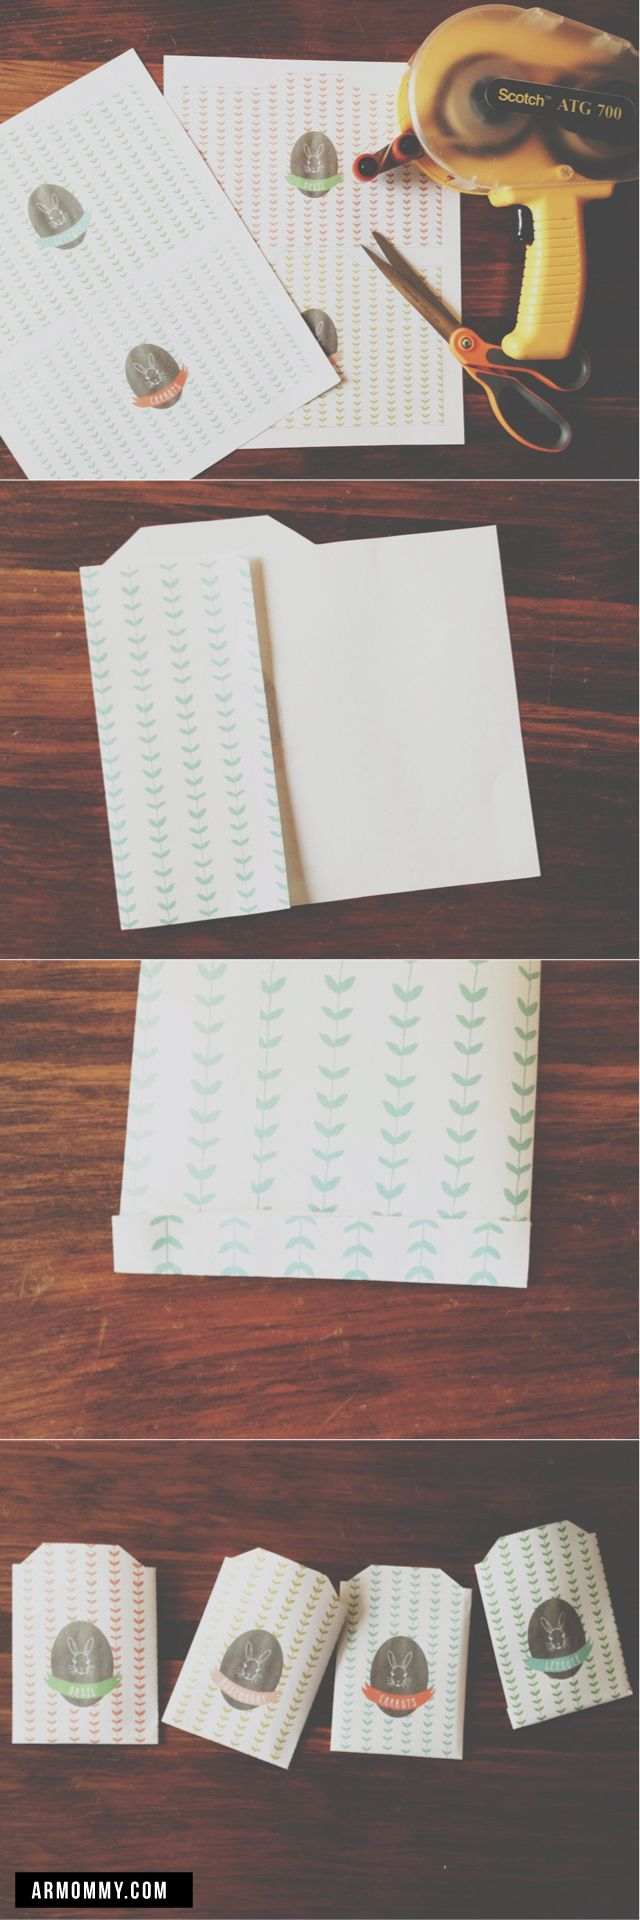 some easter for your basket. free seed packet printable.